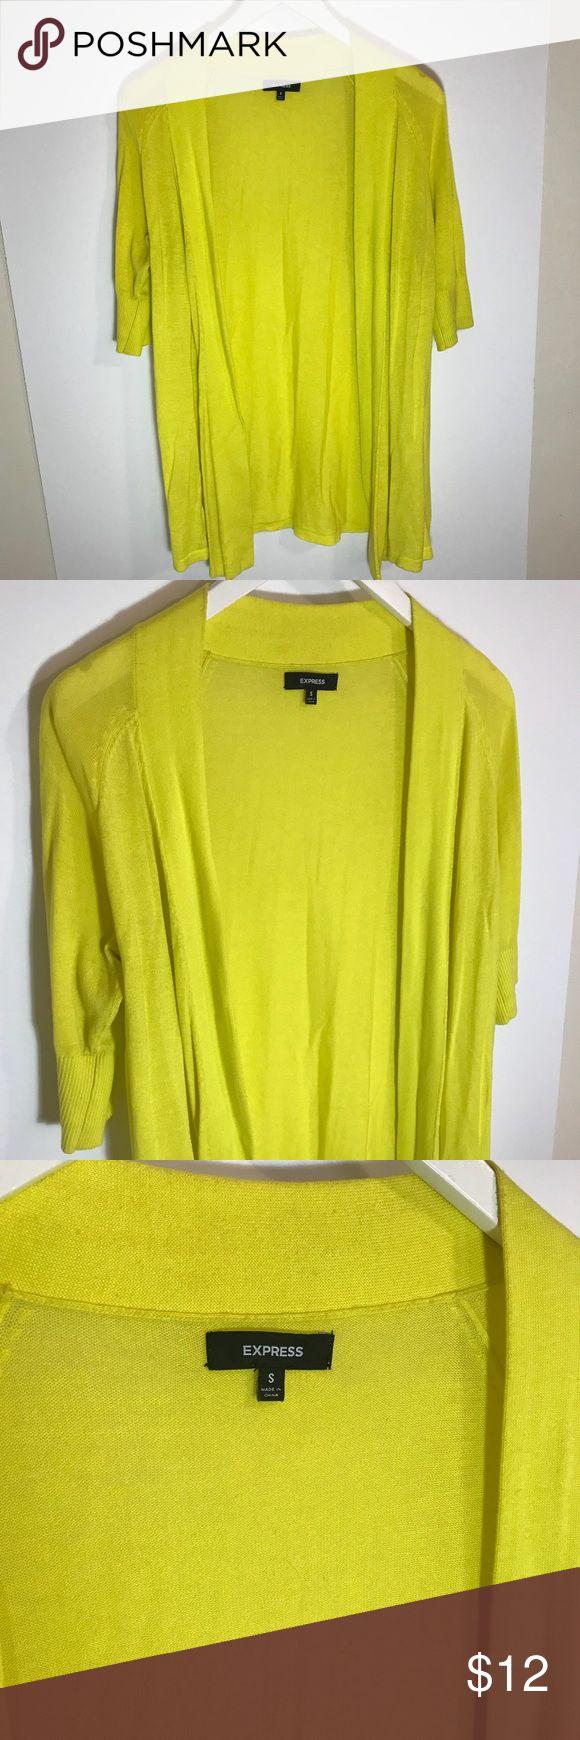 Express Neon yellow open cardigan size Sm Express  Neon yellow  open cardigan  pre-loved still in good condition  Size Small Express Tops